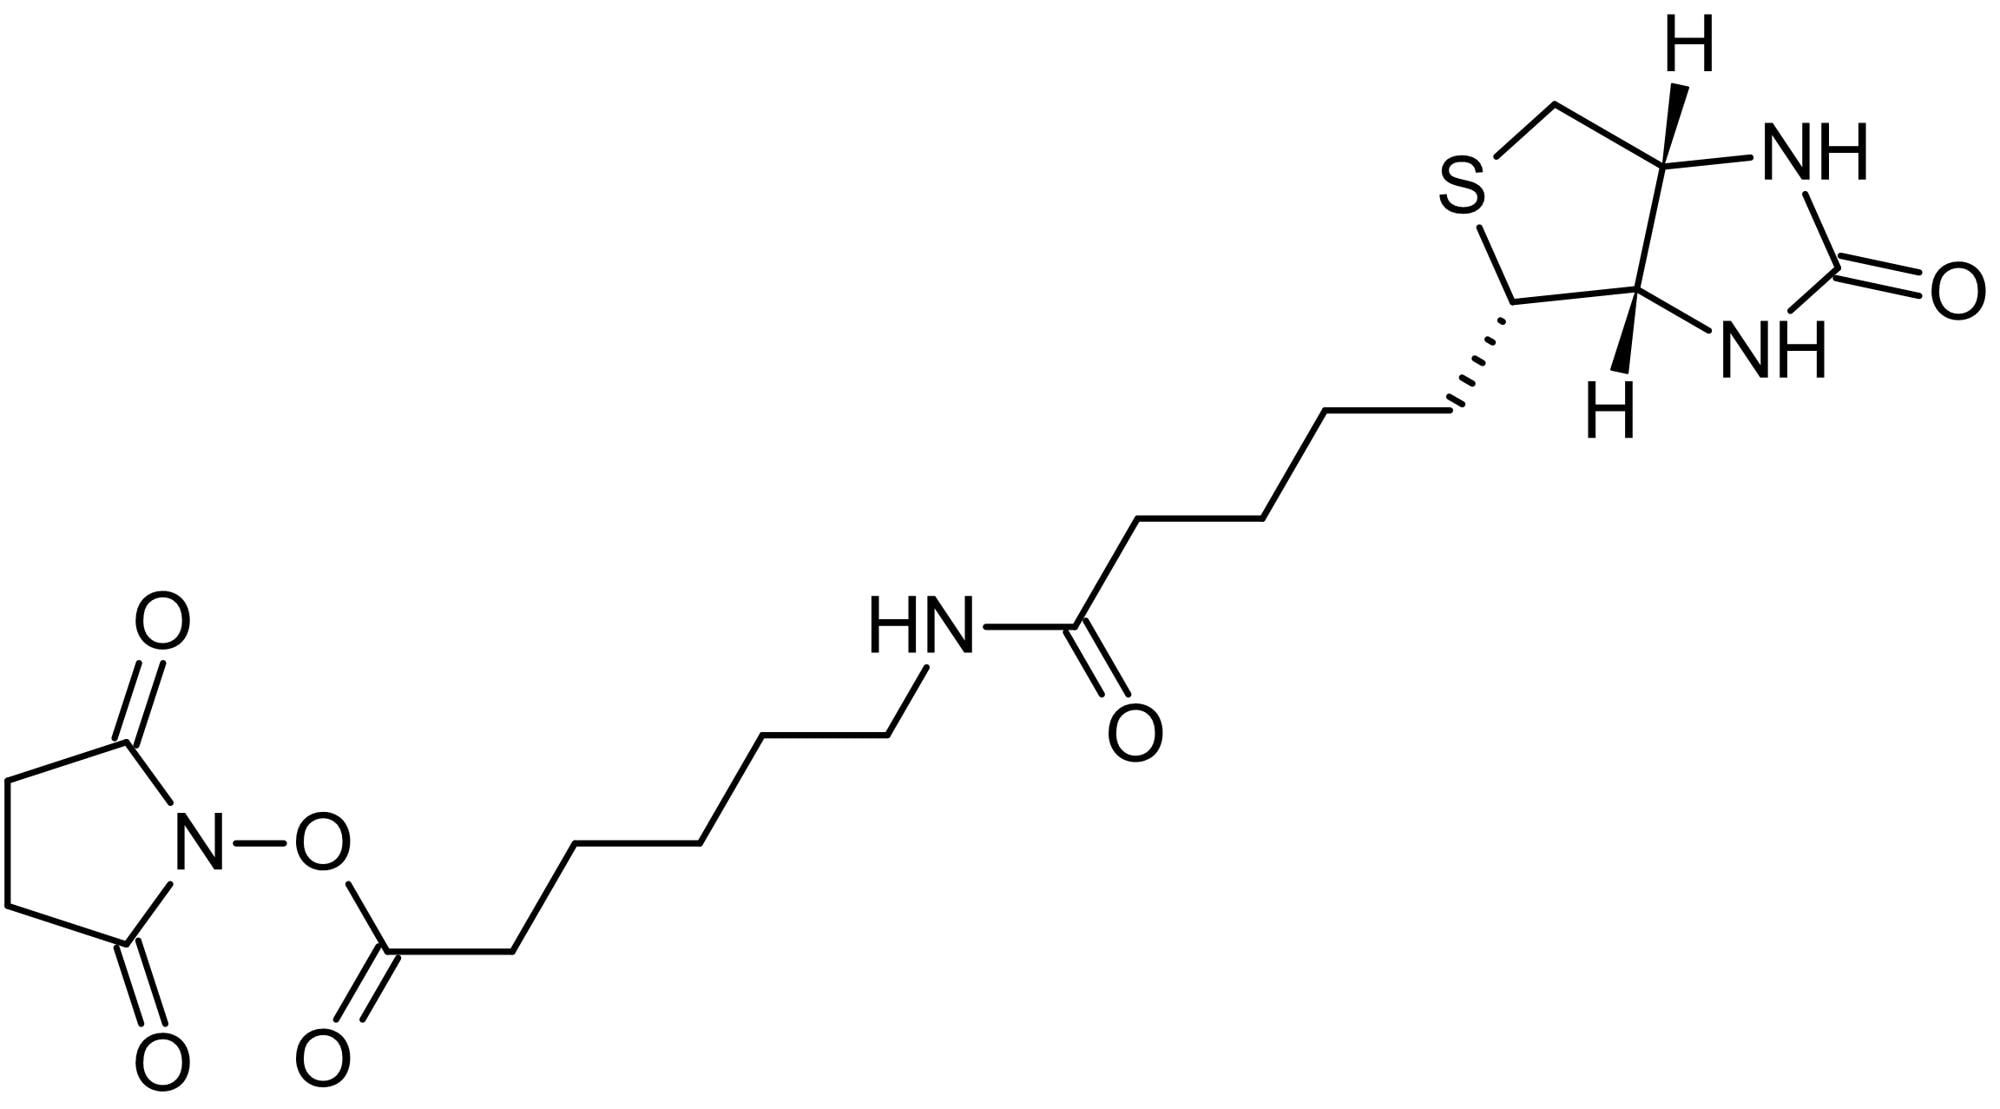 Chemical Structure - Biotin-LC-NHS (Succinimidyl 6-(biotinamido)hexanoate), Amine-reactive biotinylation agent (ab145617)